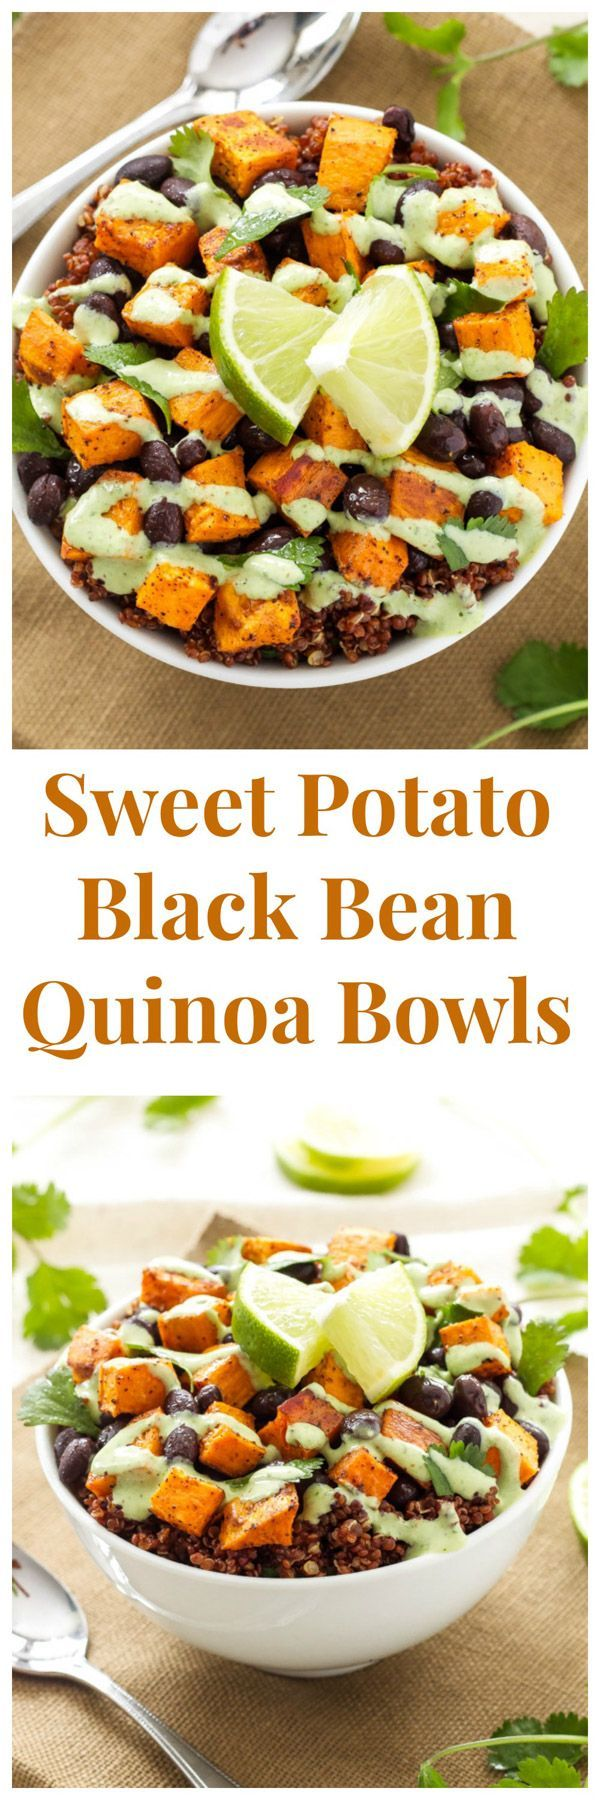 Sweet Potato and Black Bean Quinoa Bowls | A delicious, filling, meatless meal that will please both vegetarians and meat lovers! http://reciperunner.com/sweet-potato-black-bean-quinoa-bowls-2/